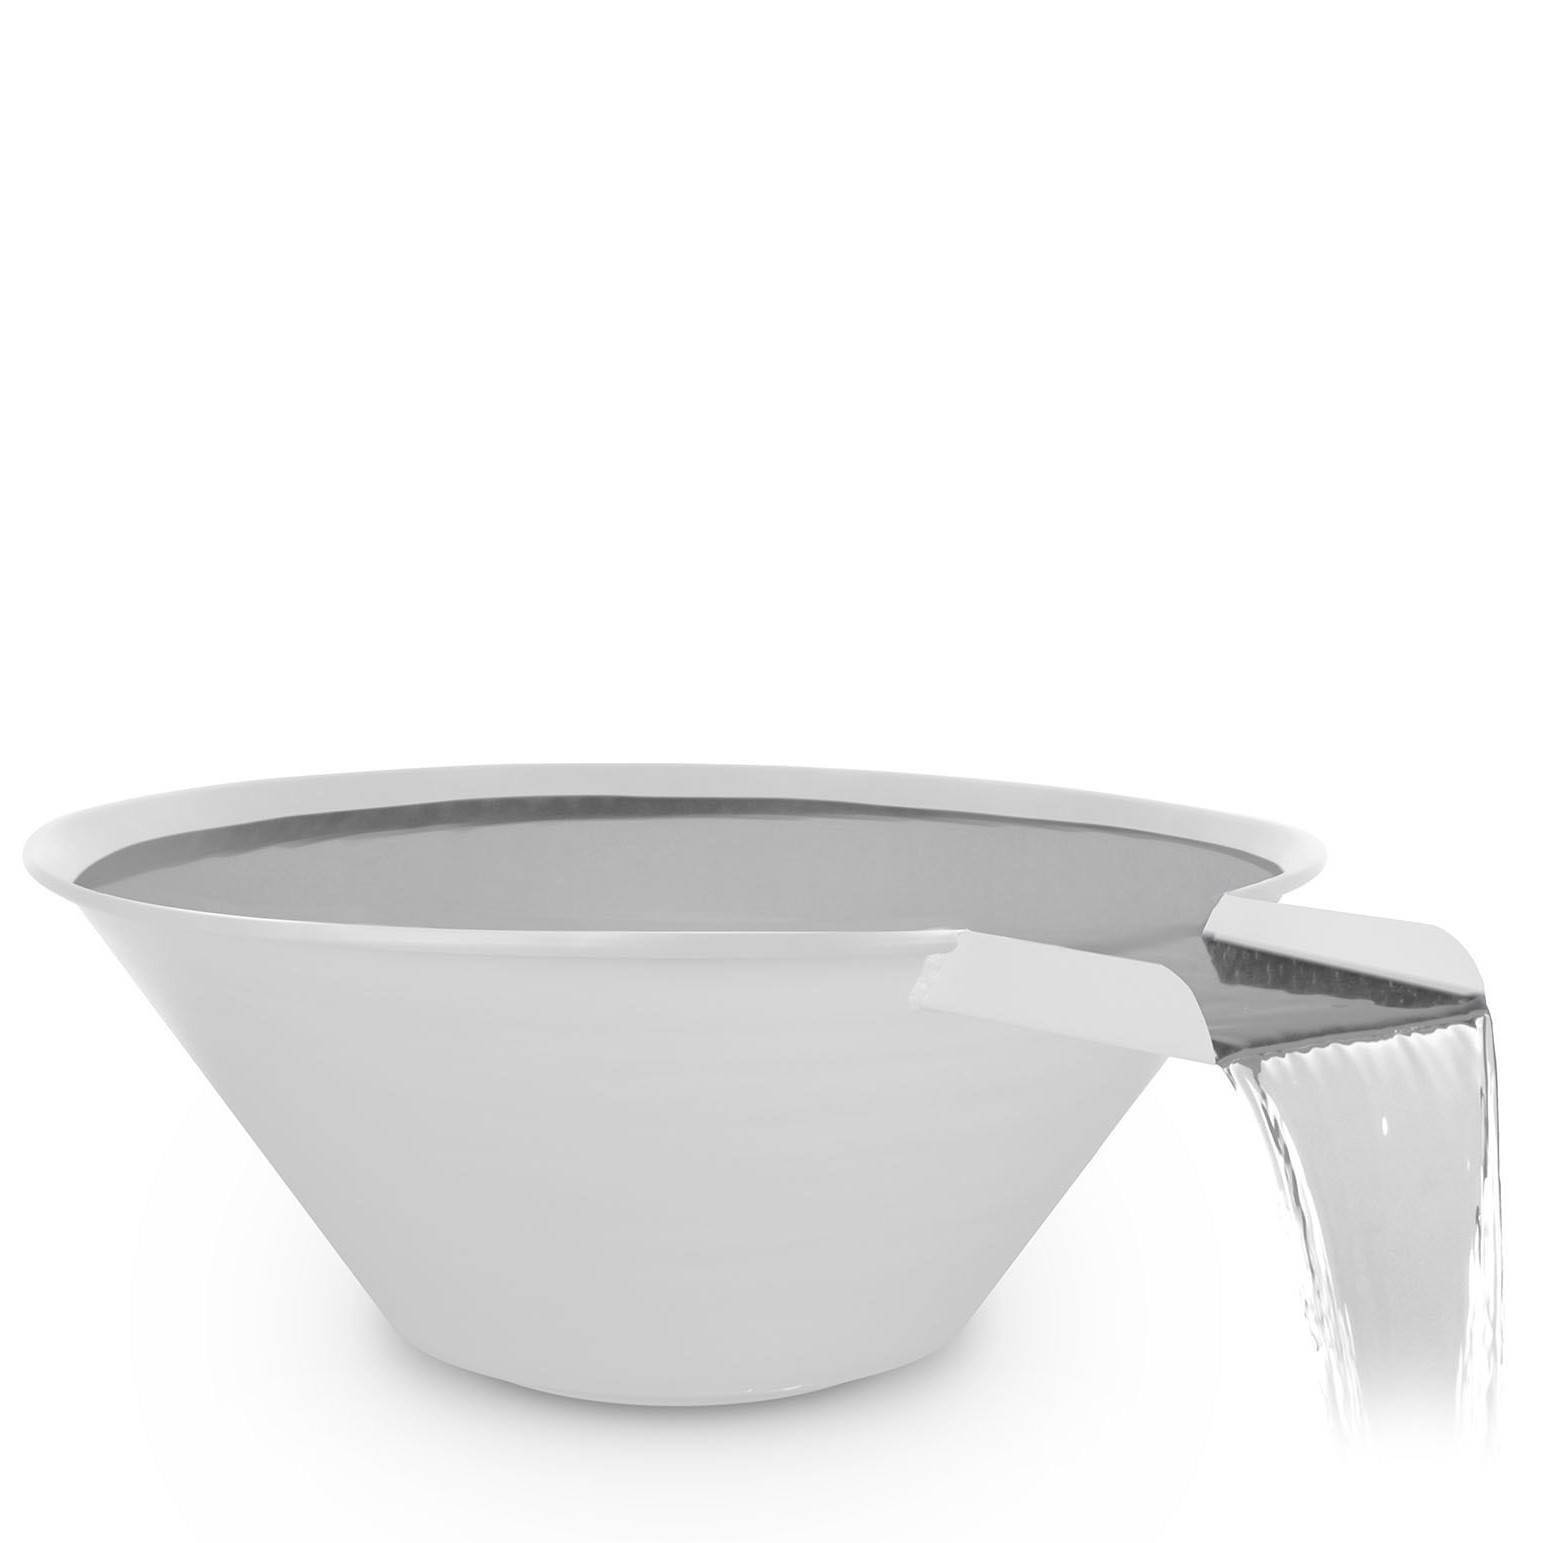 "30"" Cazo Pool Water Bowl - White Powder Coated Steel"